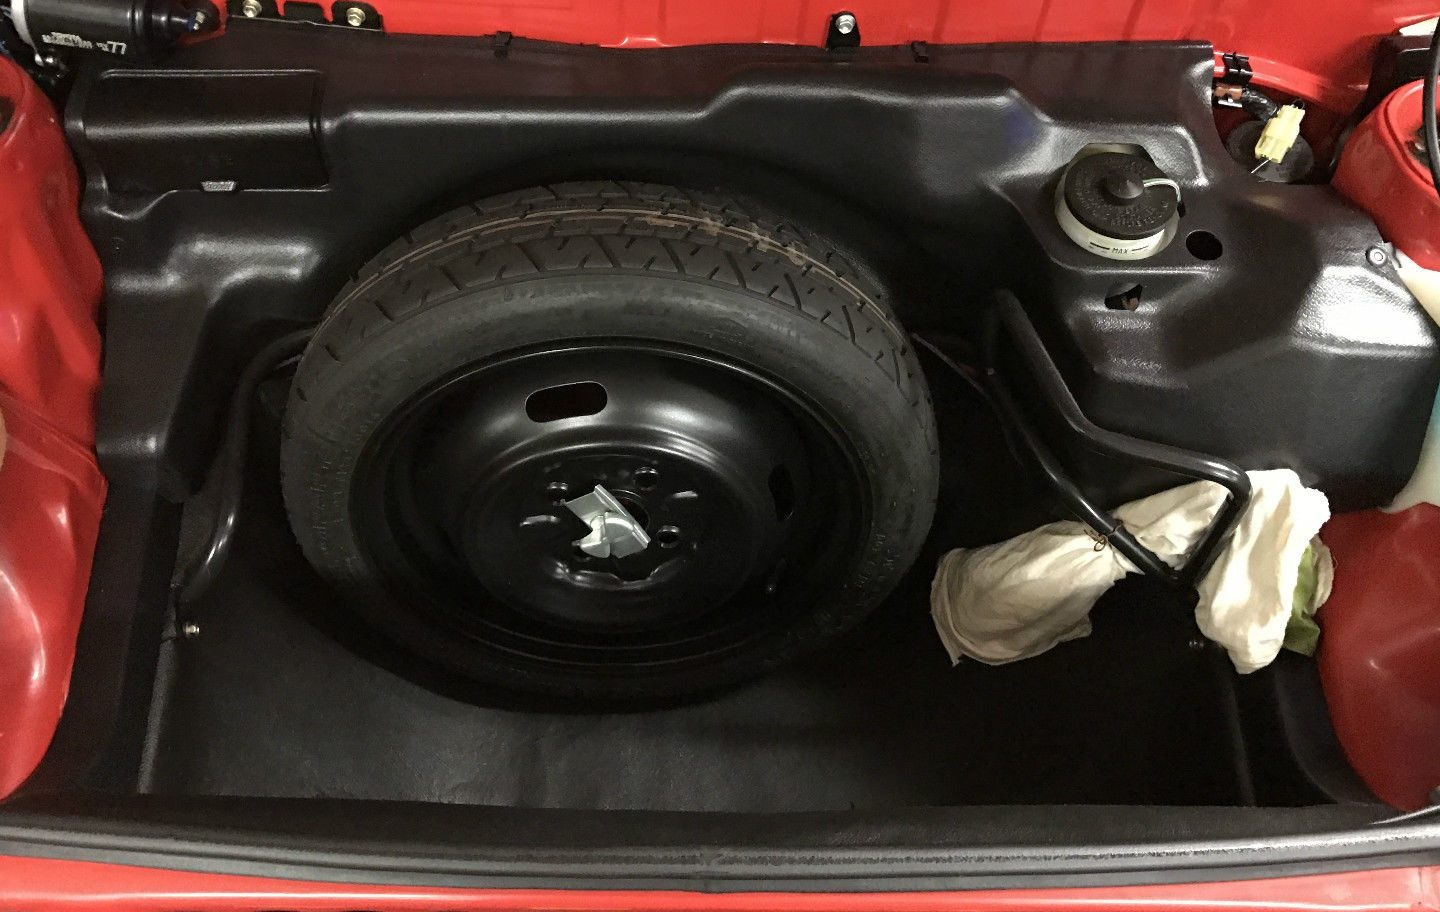 Everything On This MR2 Appears As New, Including The Spare Tire, Painted  Surfaces Inside And Out, And Even The Black Plastic Trim.